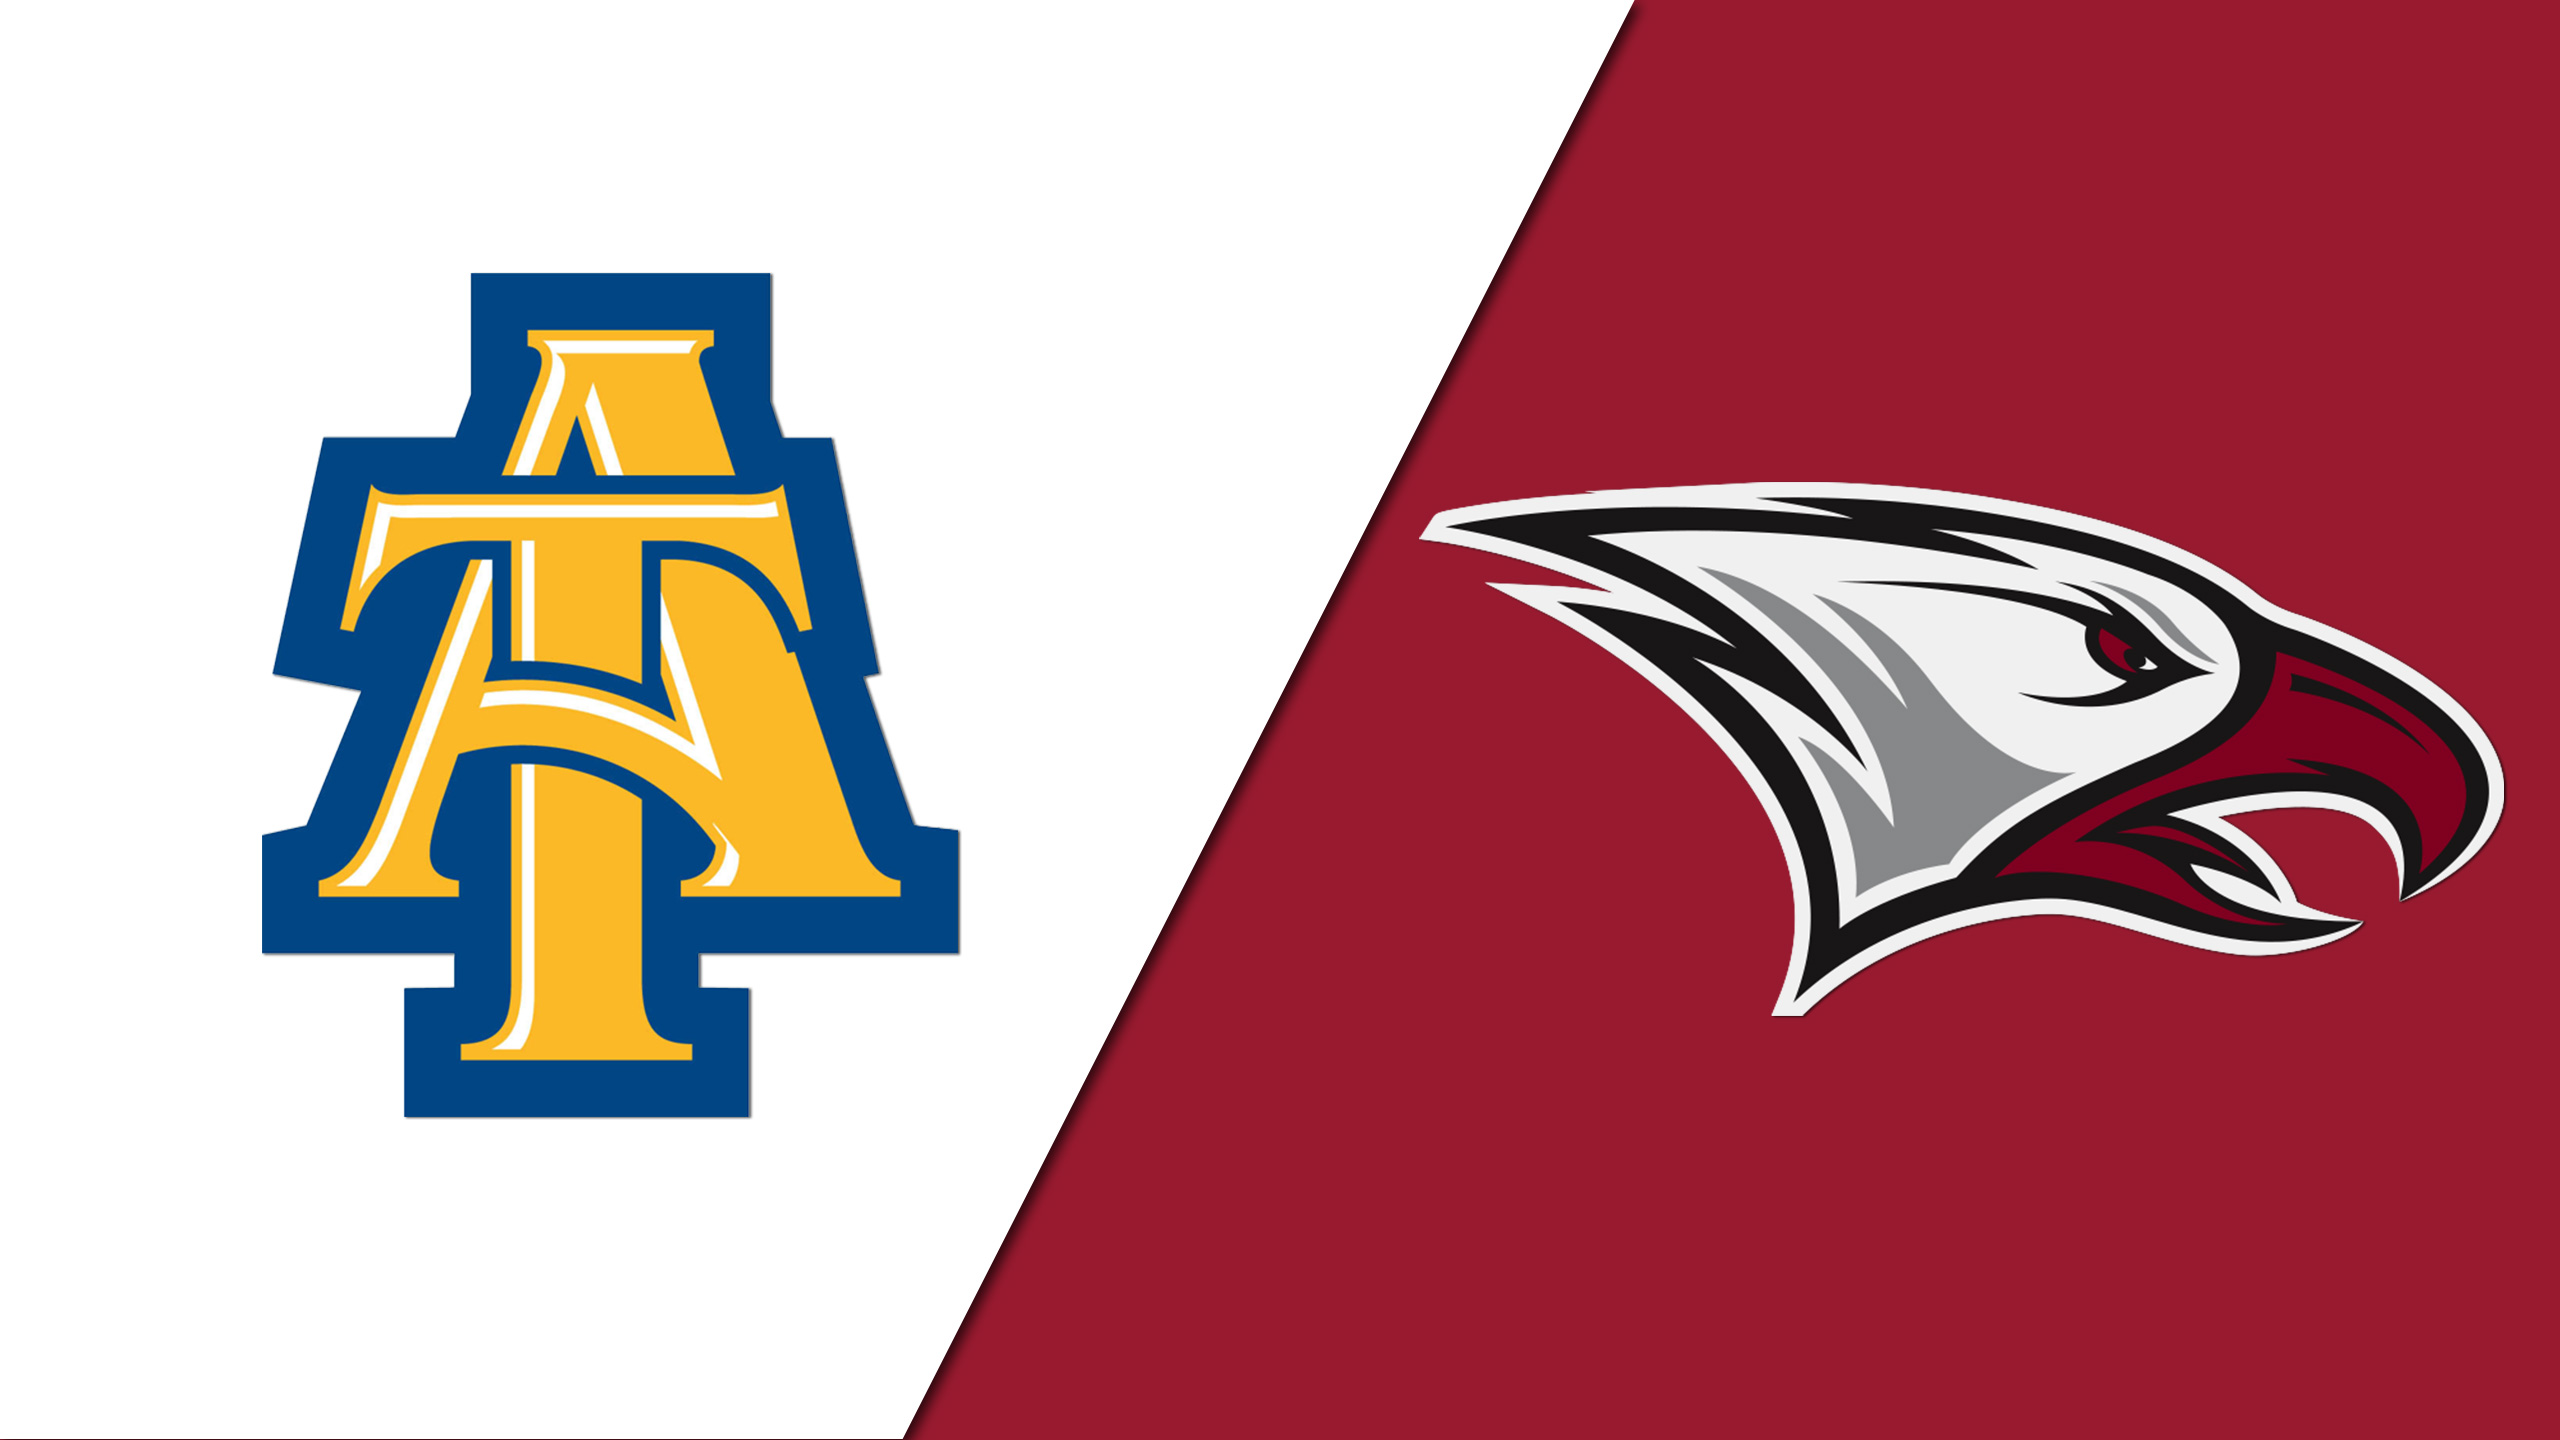 North Carolina A&T vs. North Carolina Central (Football)